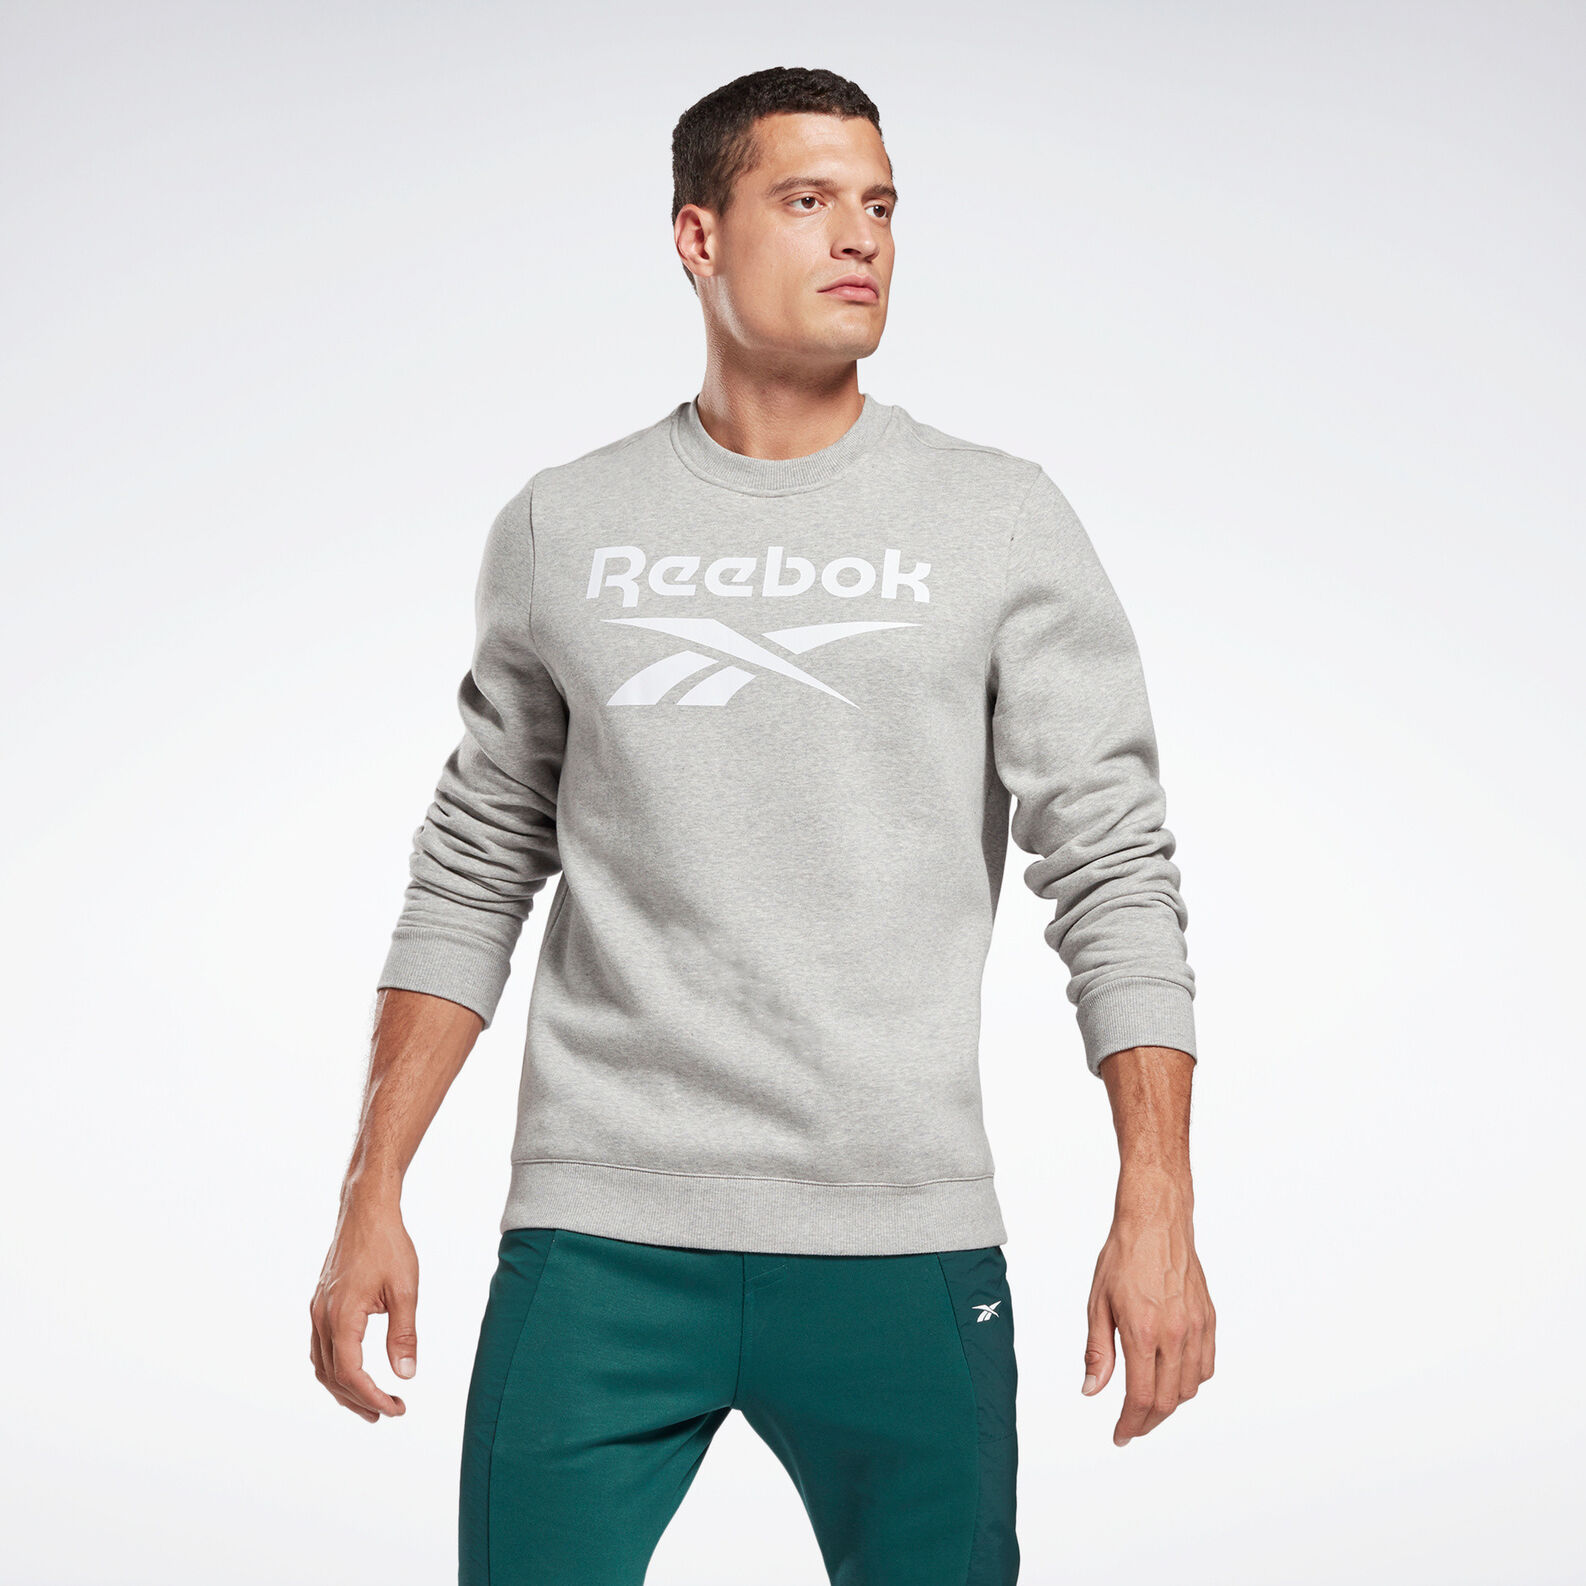 Reebok identity fleece sweatshirt with round neck